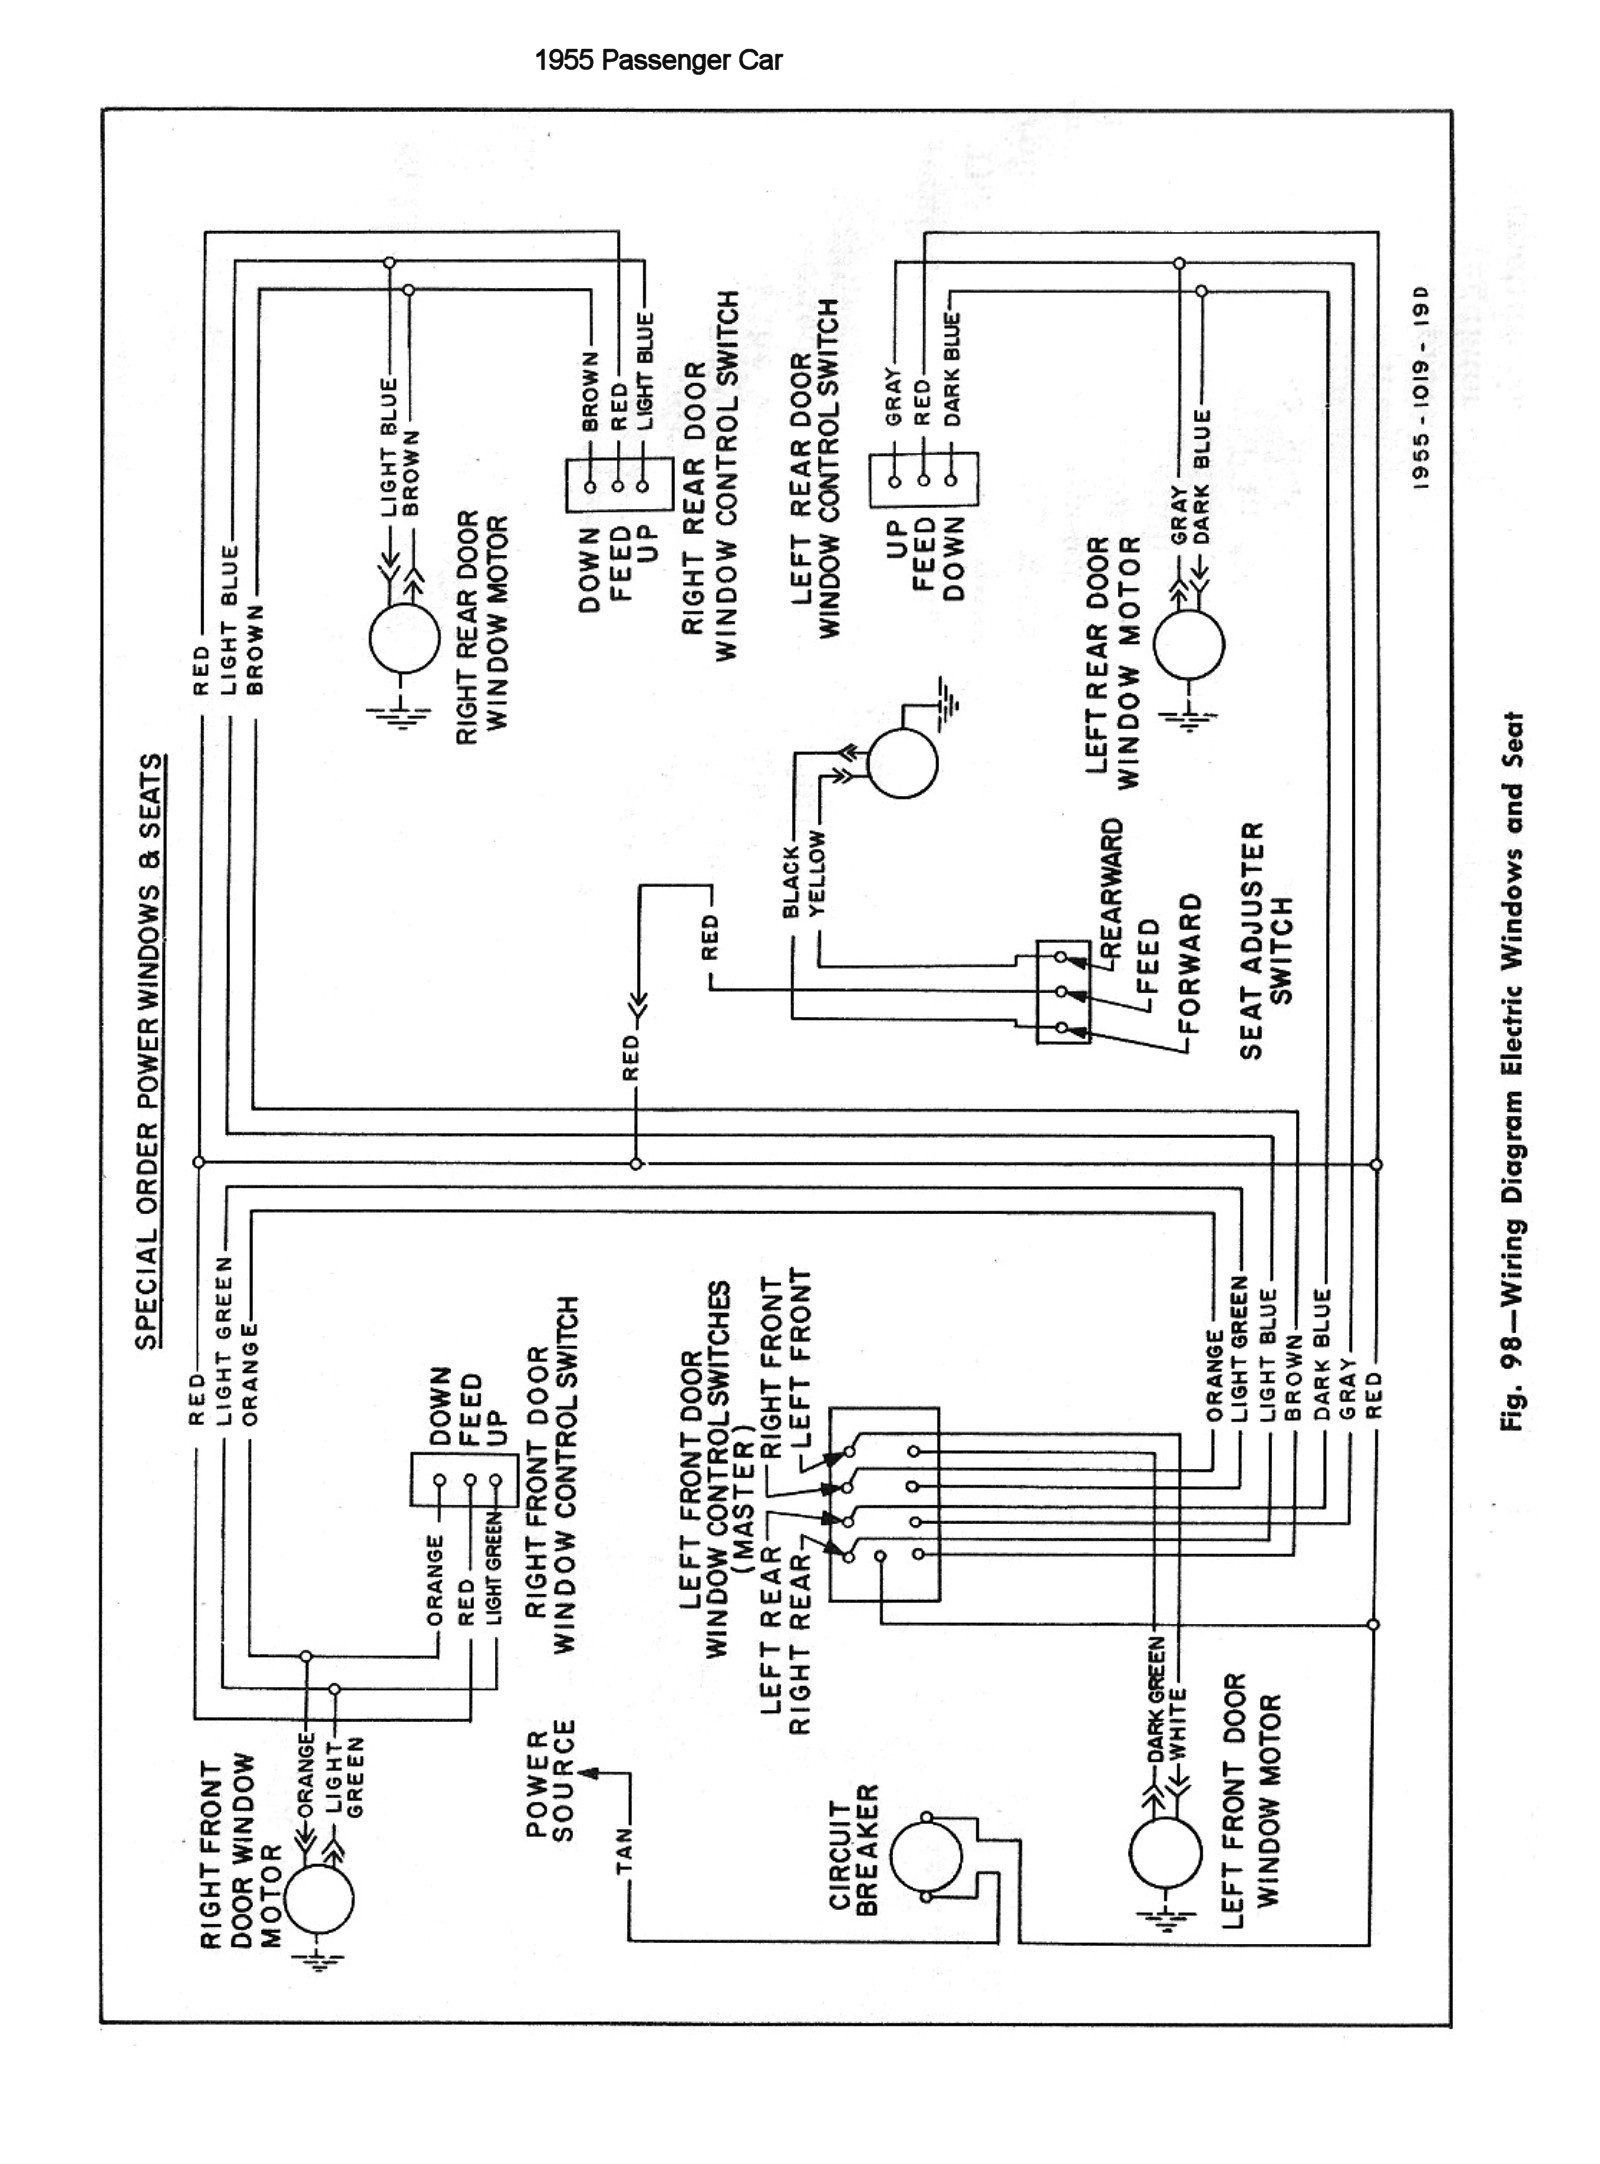 235 chevy wiring hot wiring diagram database rh 4 enfalixe cafe alte feuerwehr de 1956 chevy 235 engine diagram 1954 chevy 235 engine diagram